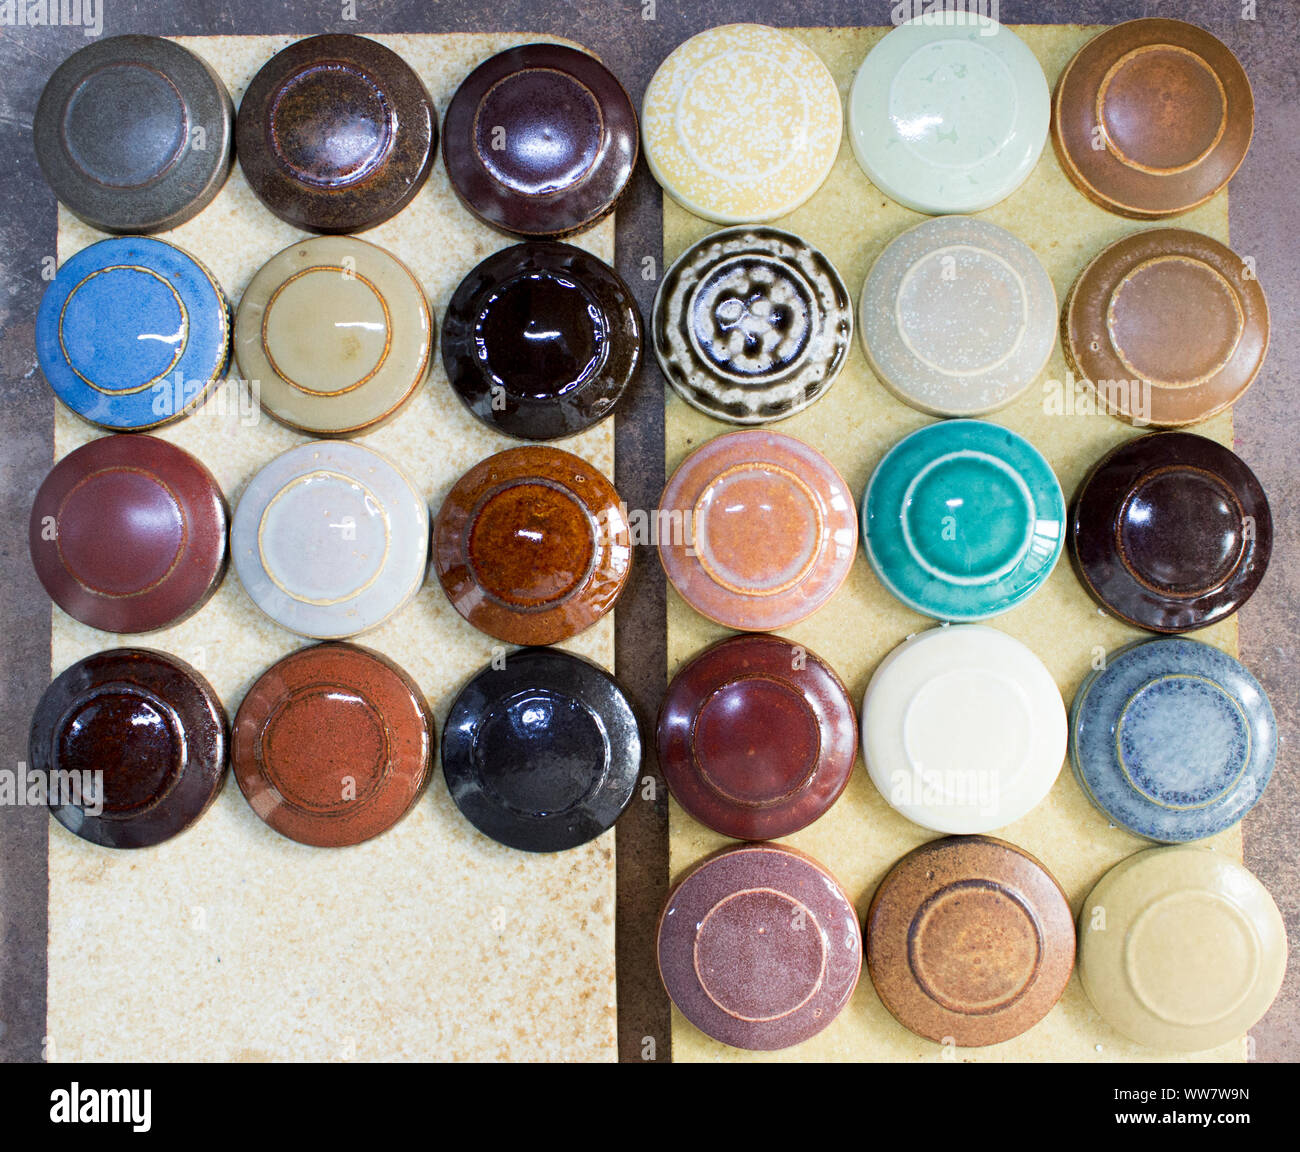 Several round clay samplers with multi-colored glazes on them lie on the square stones after firing. Stock Photo